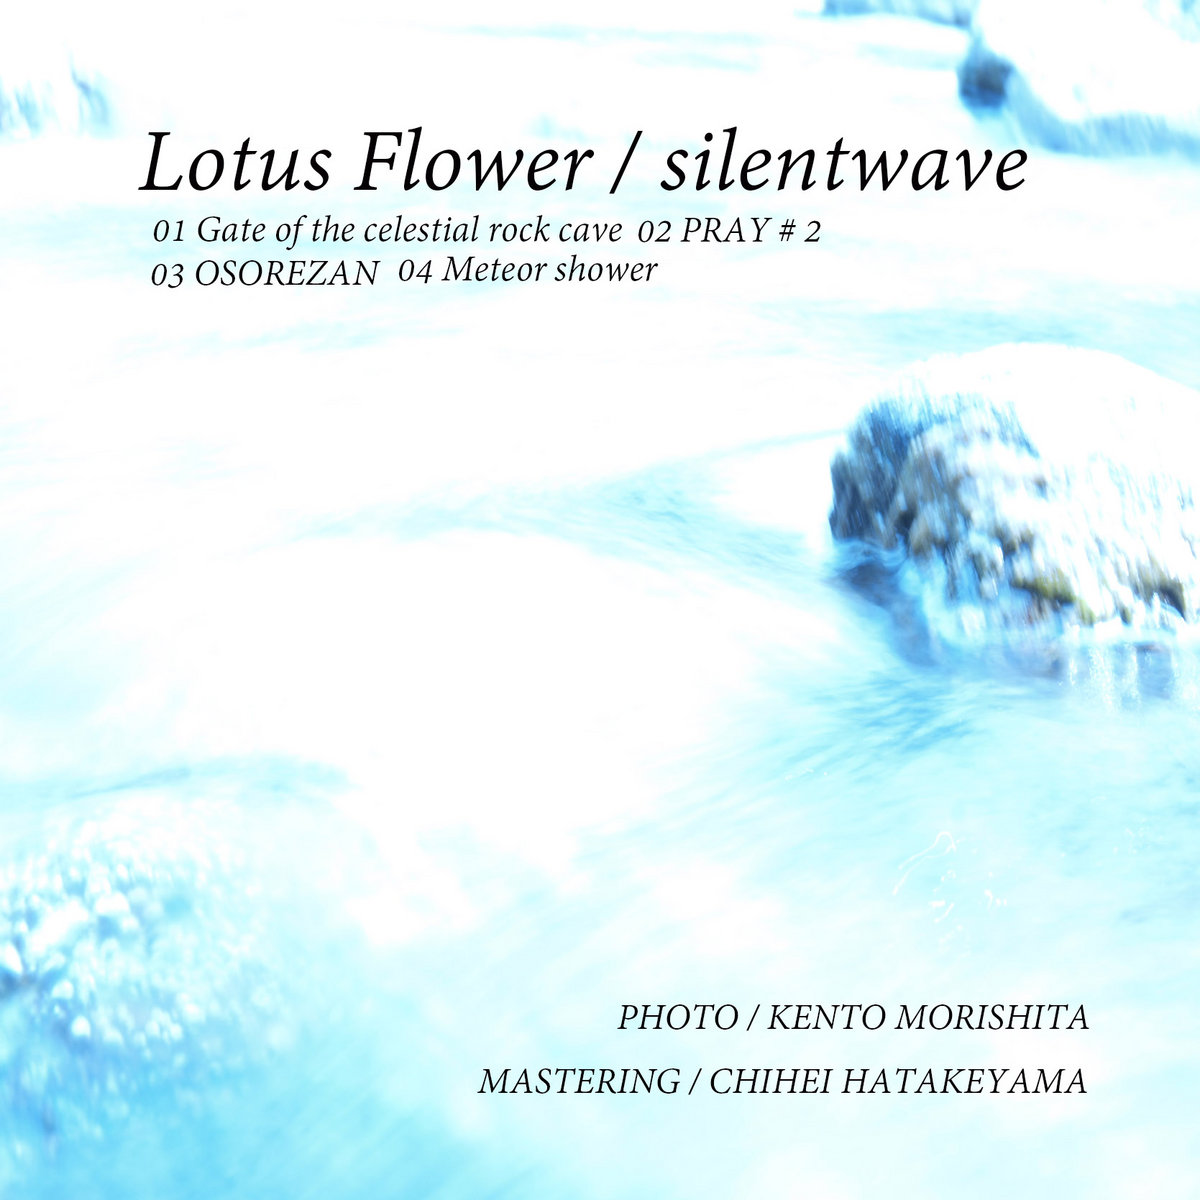 Lotus Flower Silentwave